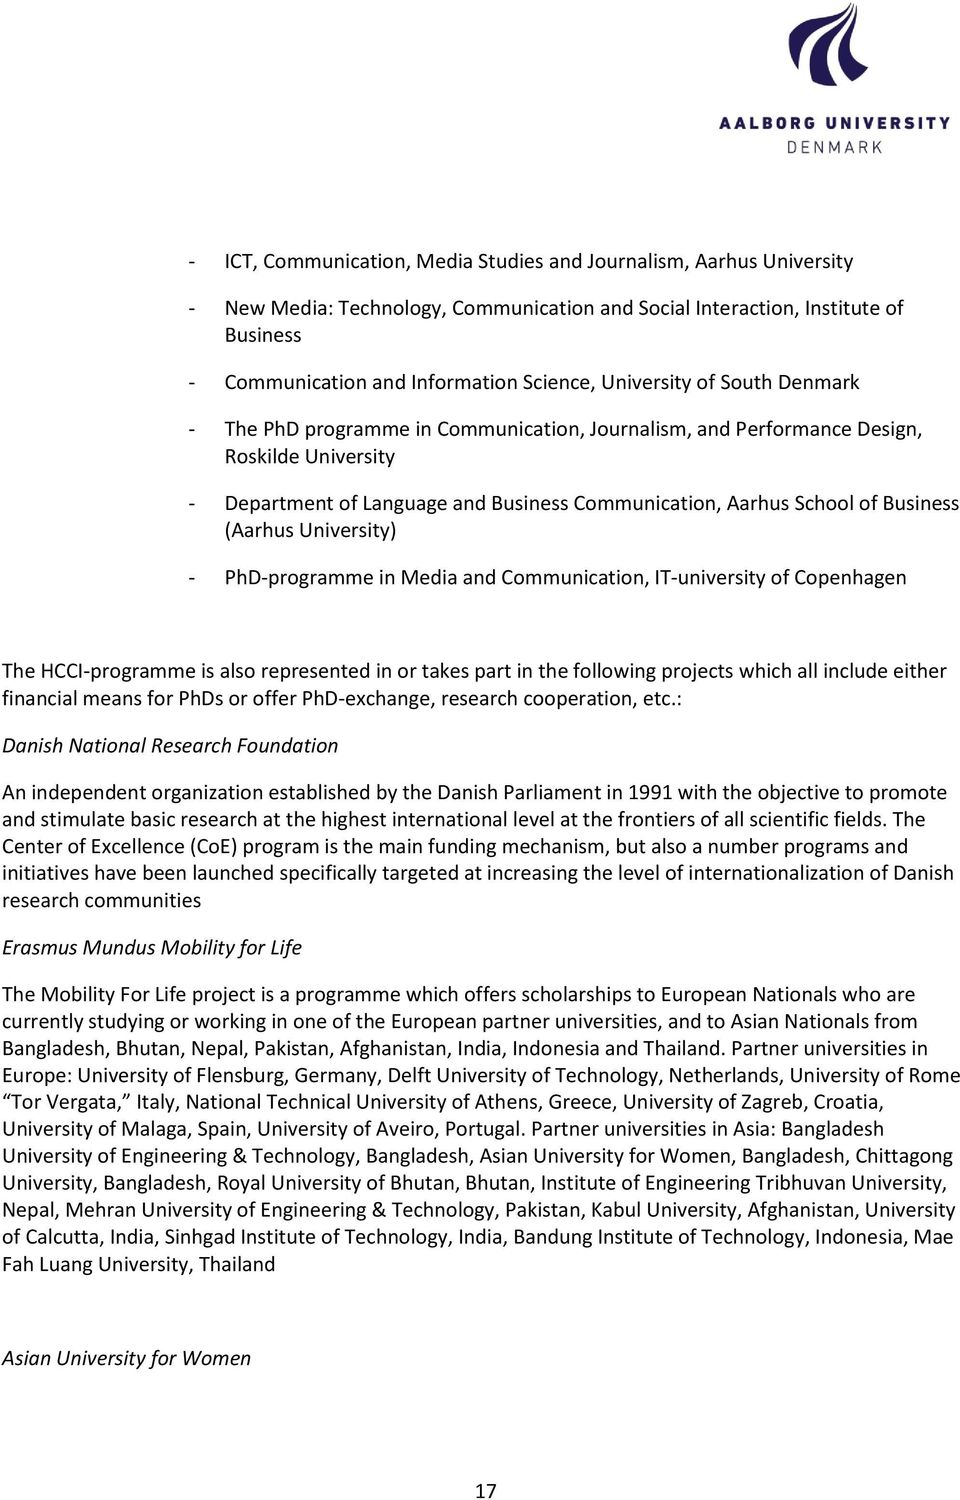 Business (Aarhus University) - PhD-programme in Media and Communication, IT-university of Copenhagen The HCCI-programme is also represented in or takes part in the following projects which all